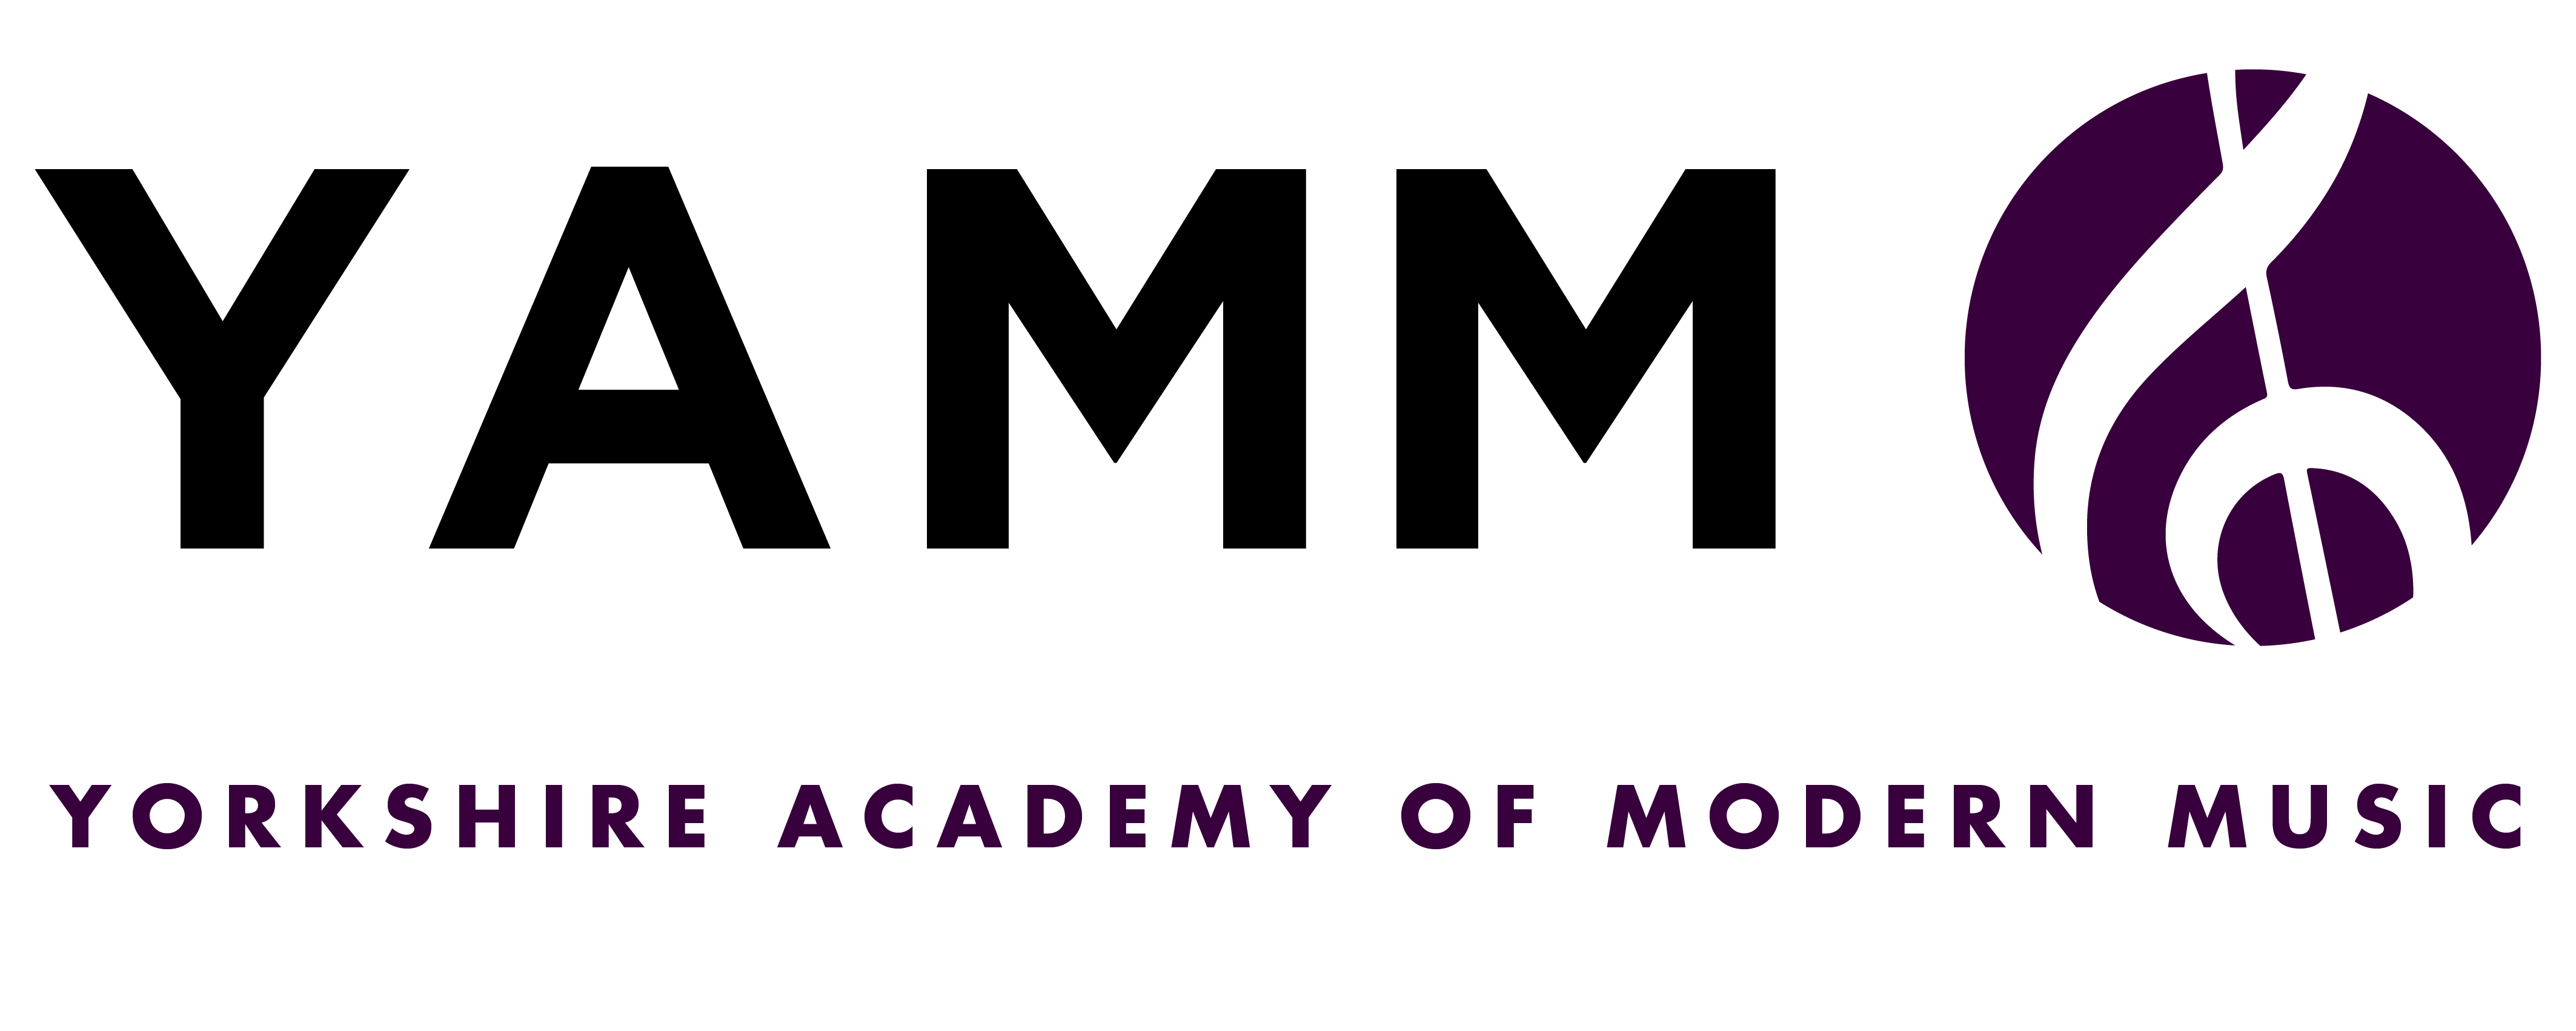 Yorkshire Academy of Modern Music